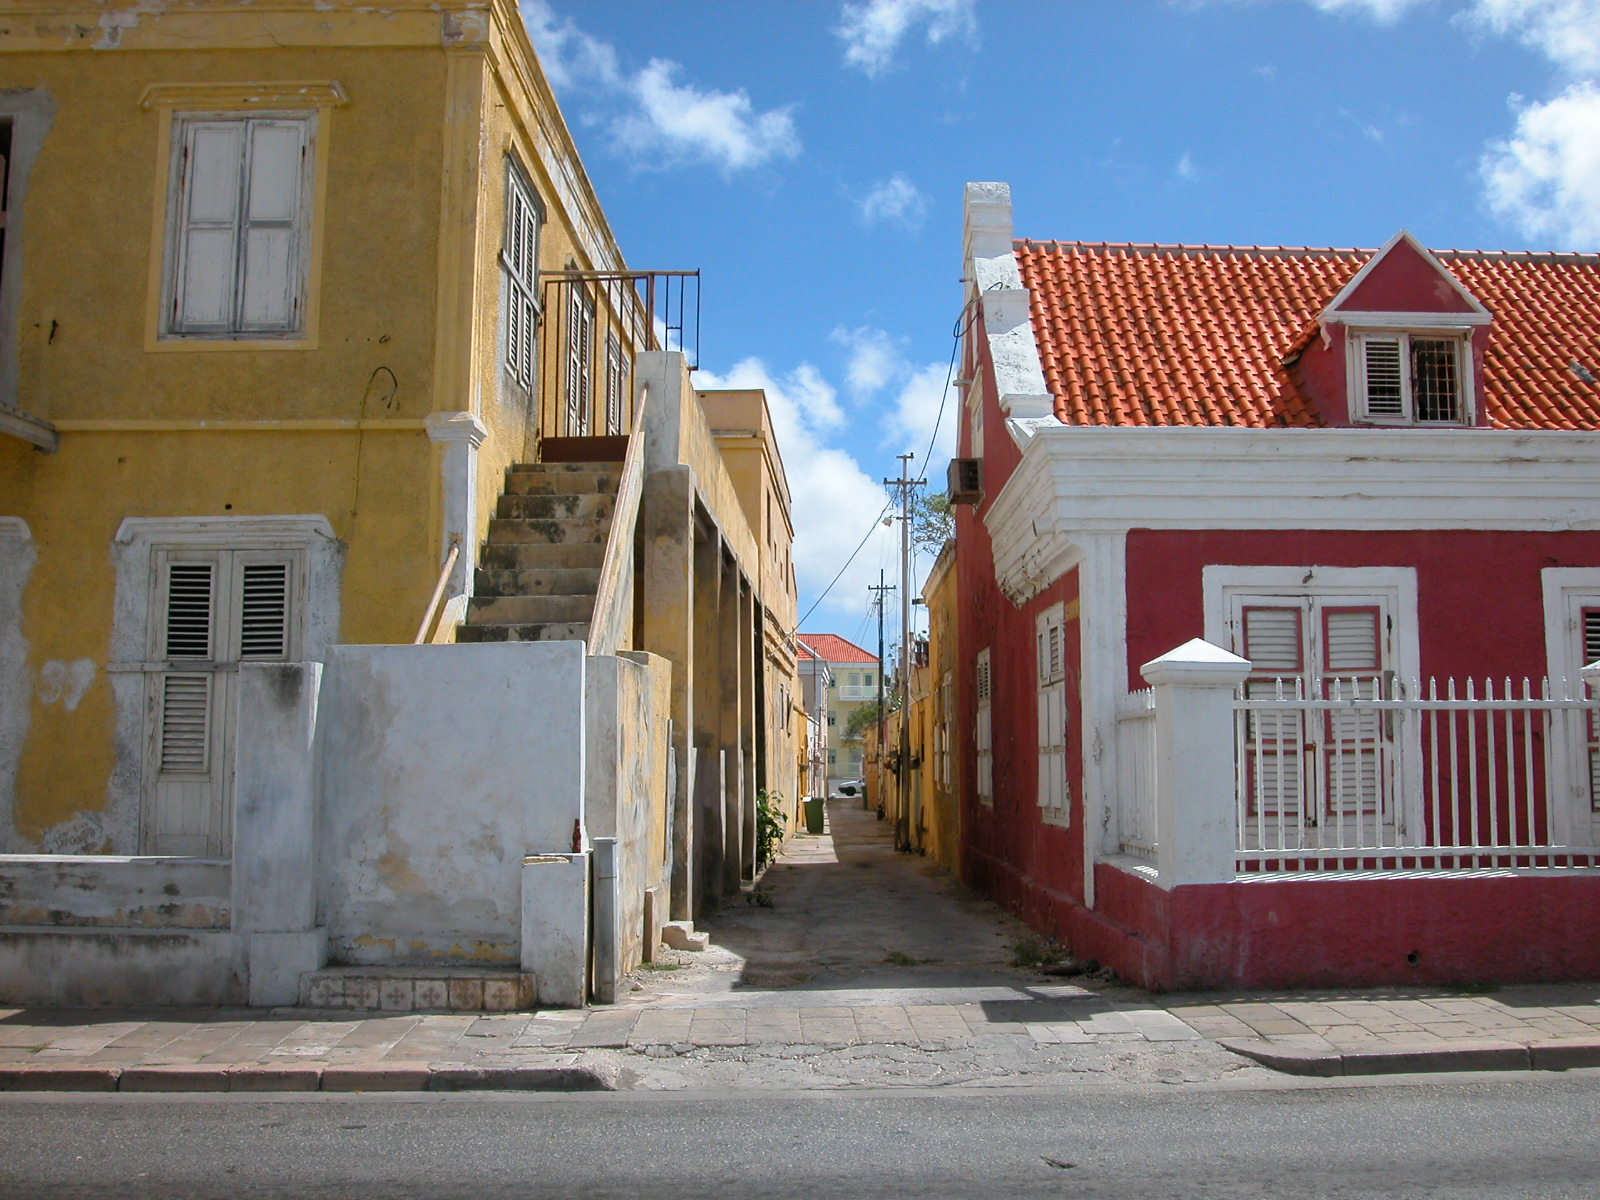 jacco curacao architecture exteriors street city village alley houses royalty free